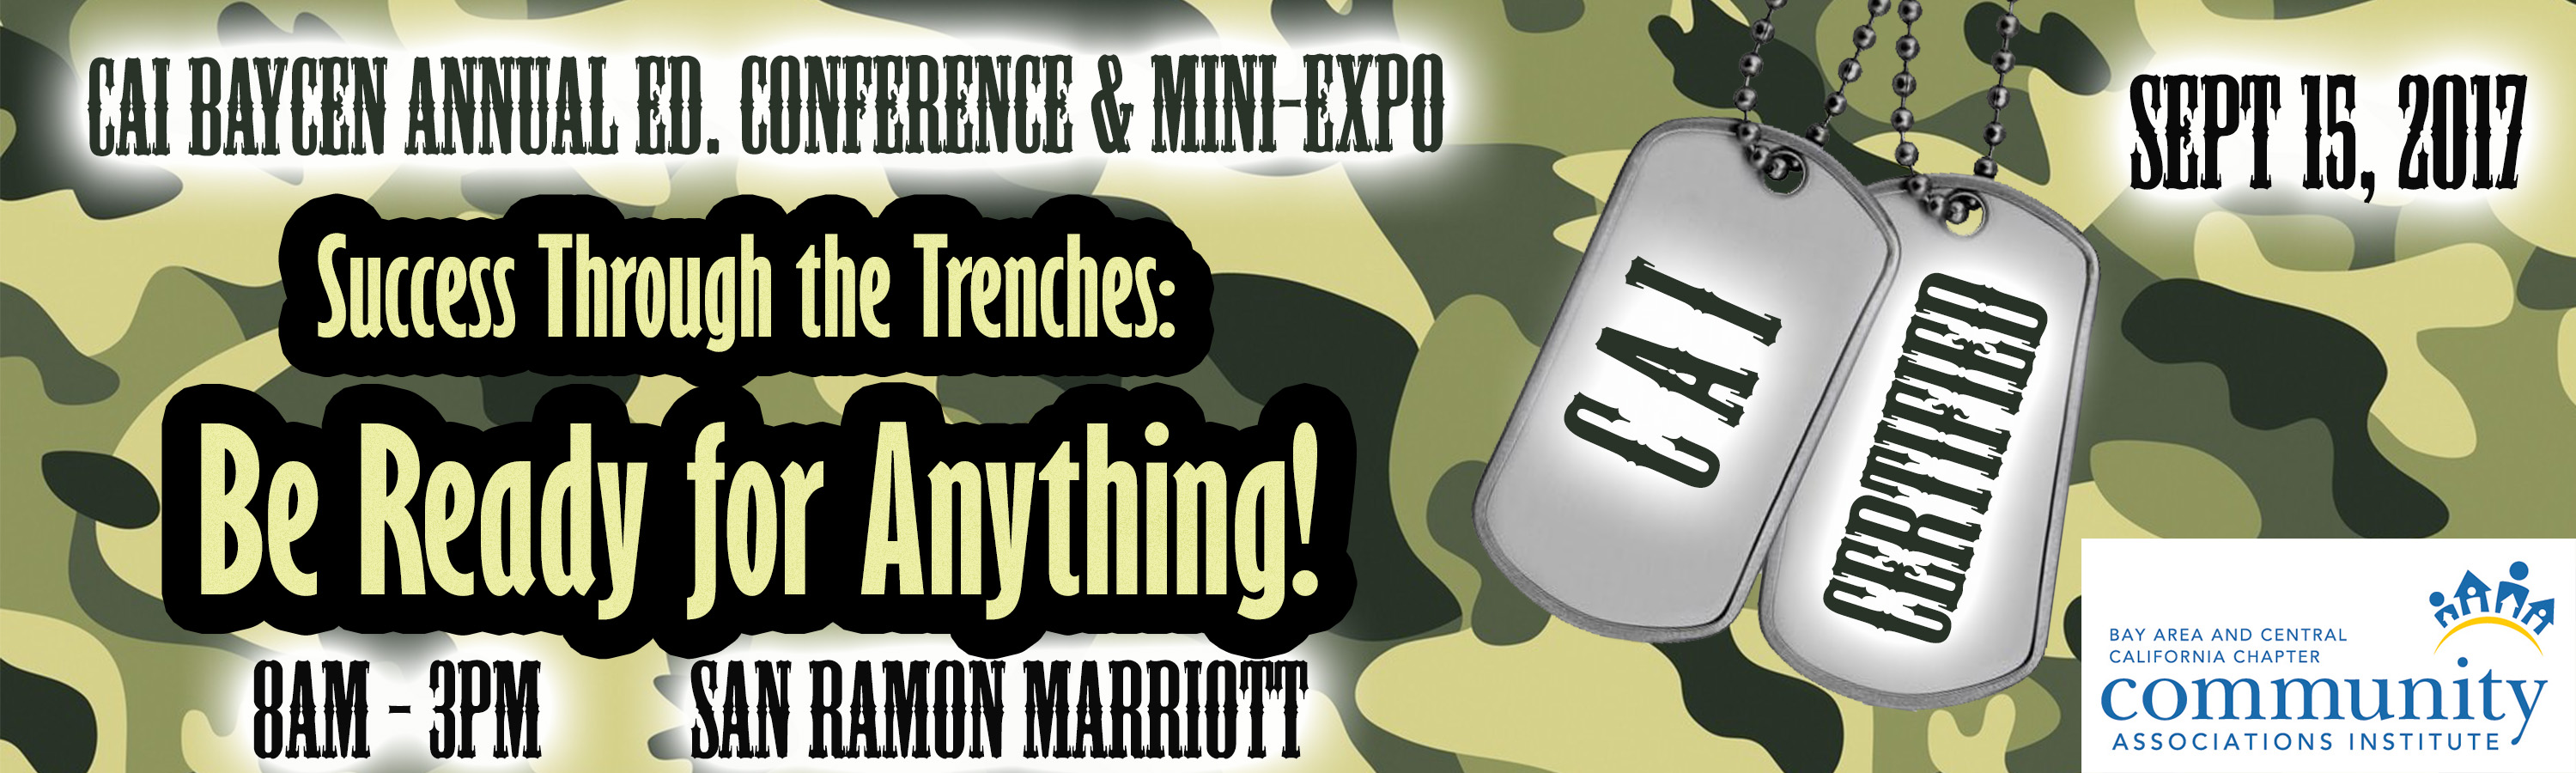 """CAI Education Conference & Mini-Expo <br> """"Camouflage Mob: Success Through the Trenches by Being Ready for Everything"""" 09/15/2017"""